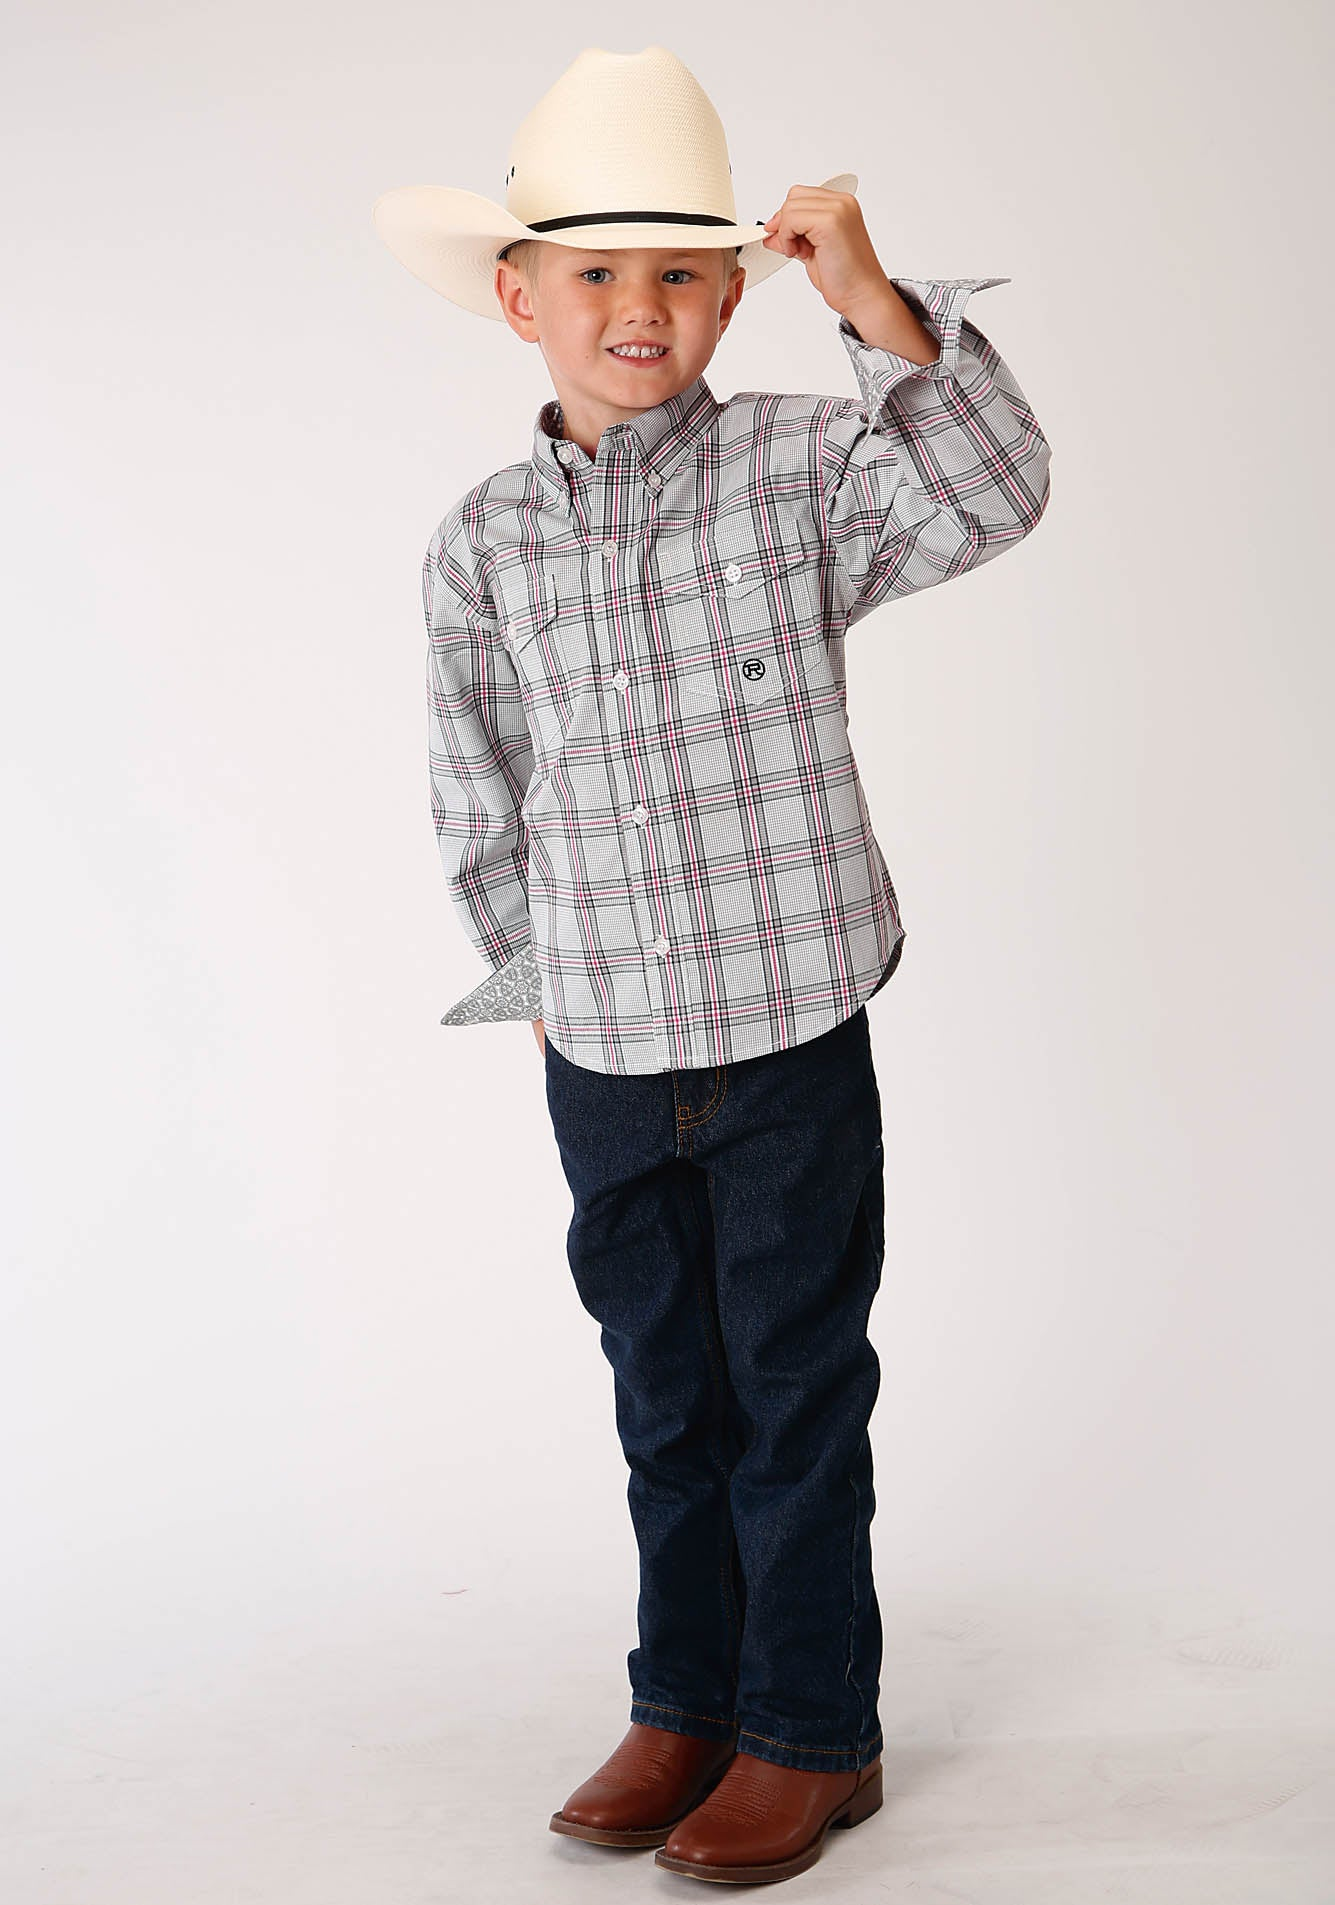 ROPER BOYS GREY 00159 COAL CREEK CHECK BOY'S AMARILLO COLLECTION - RED BARN LONG SLEEVE